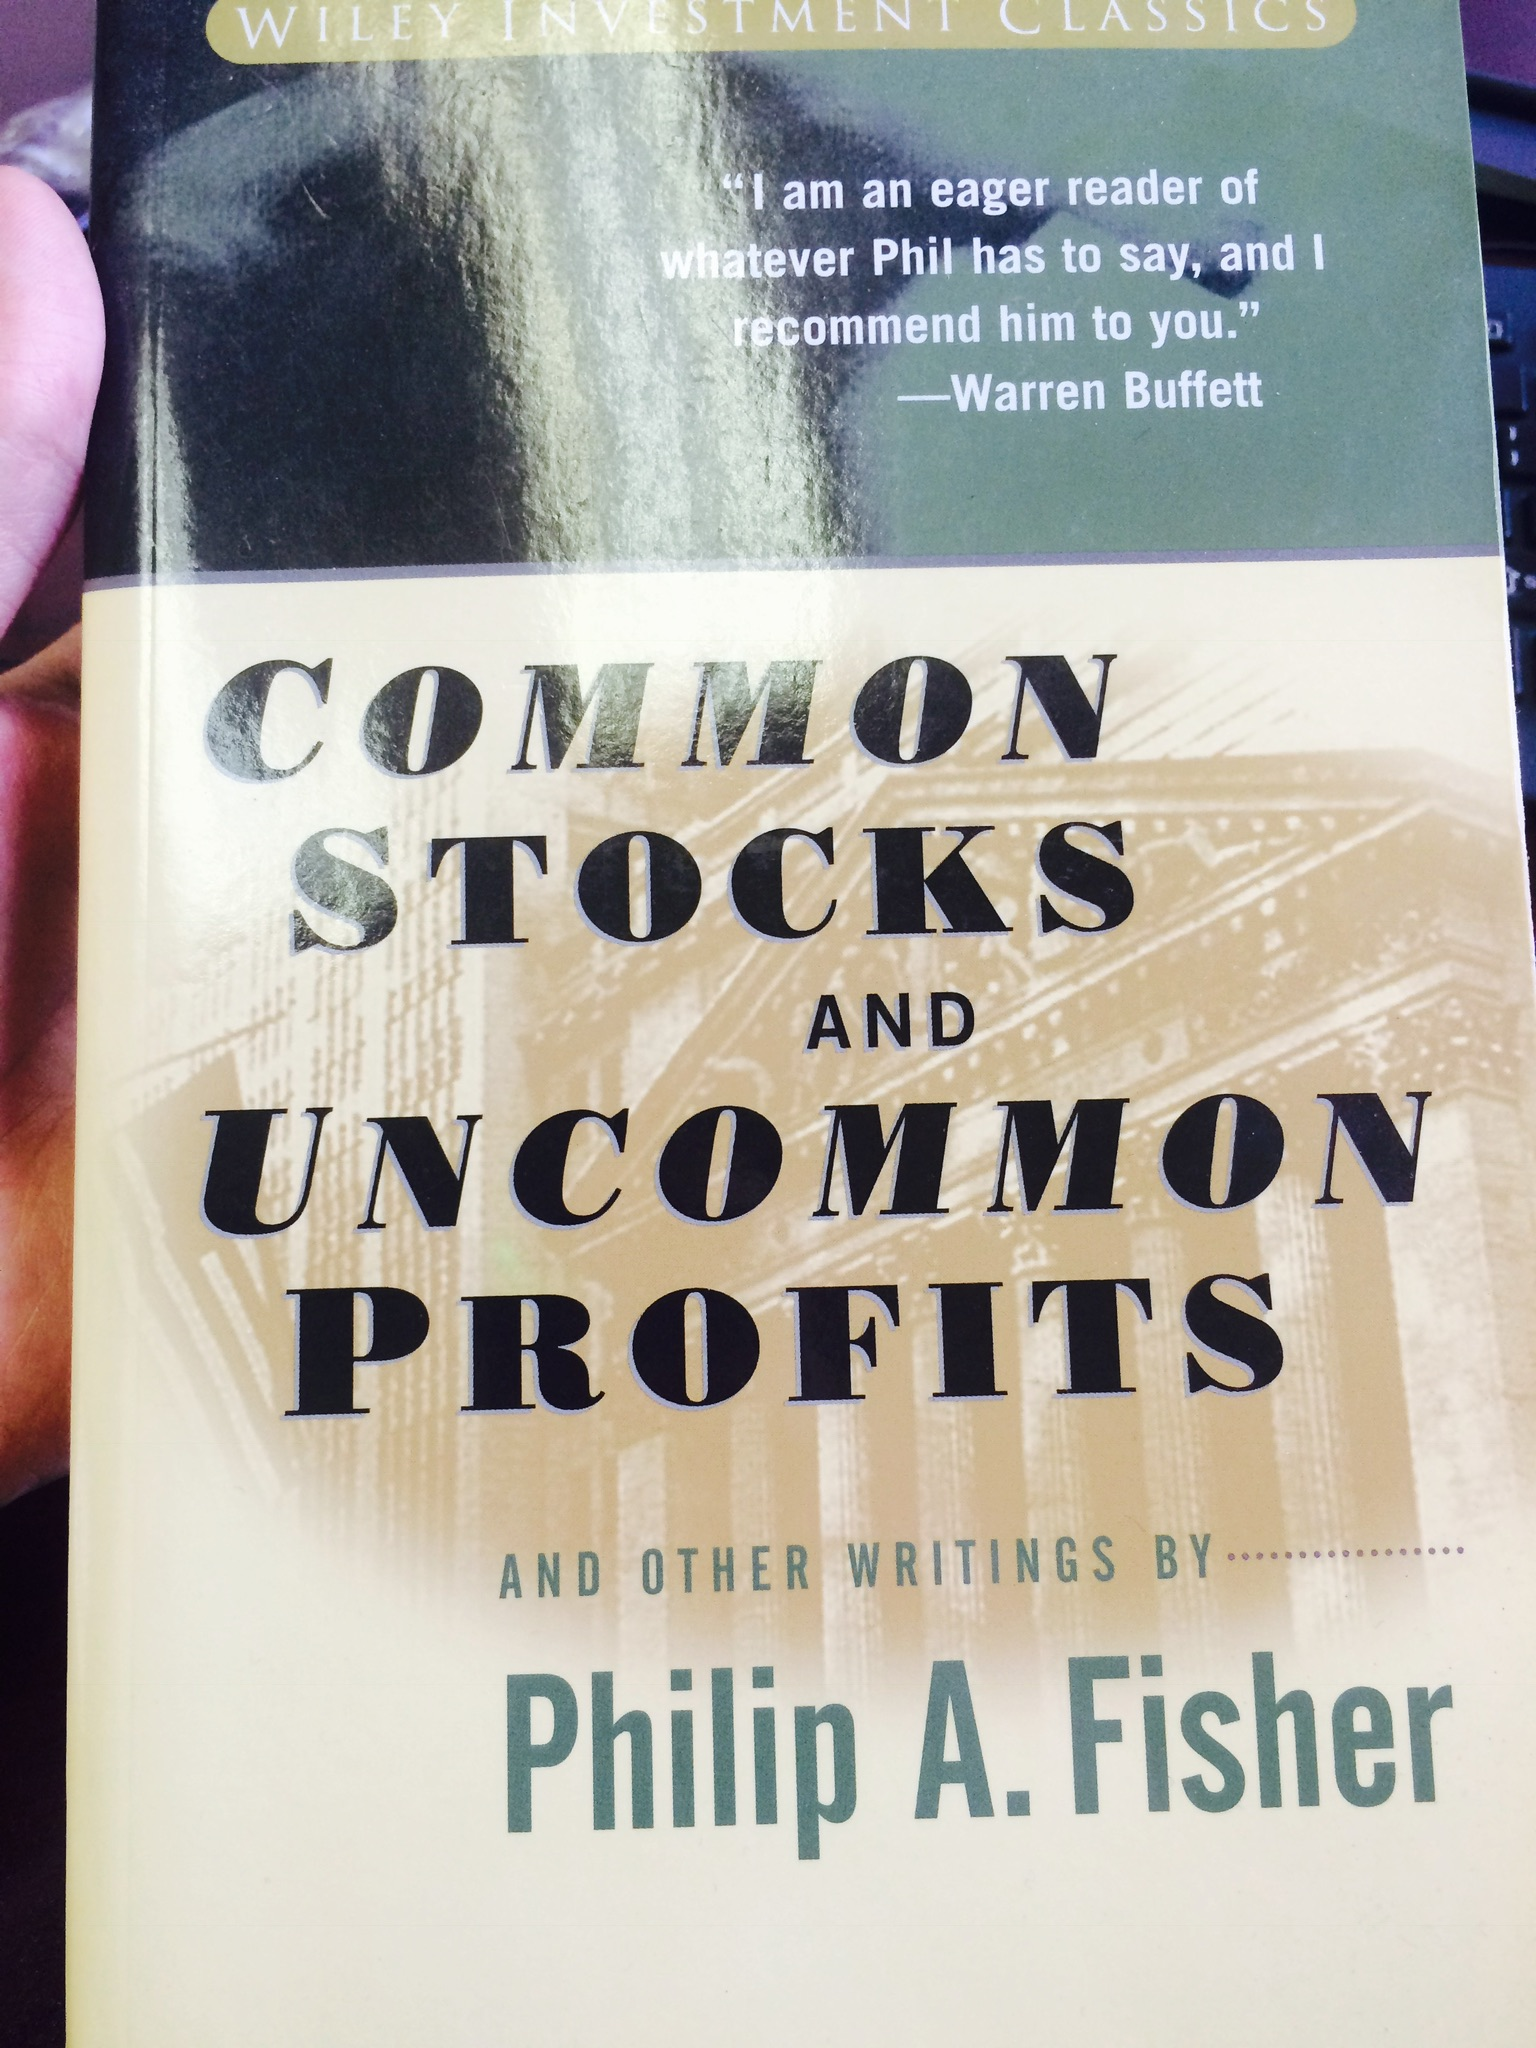 3 Great Investing Books You Need To Read